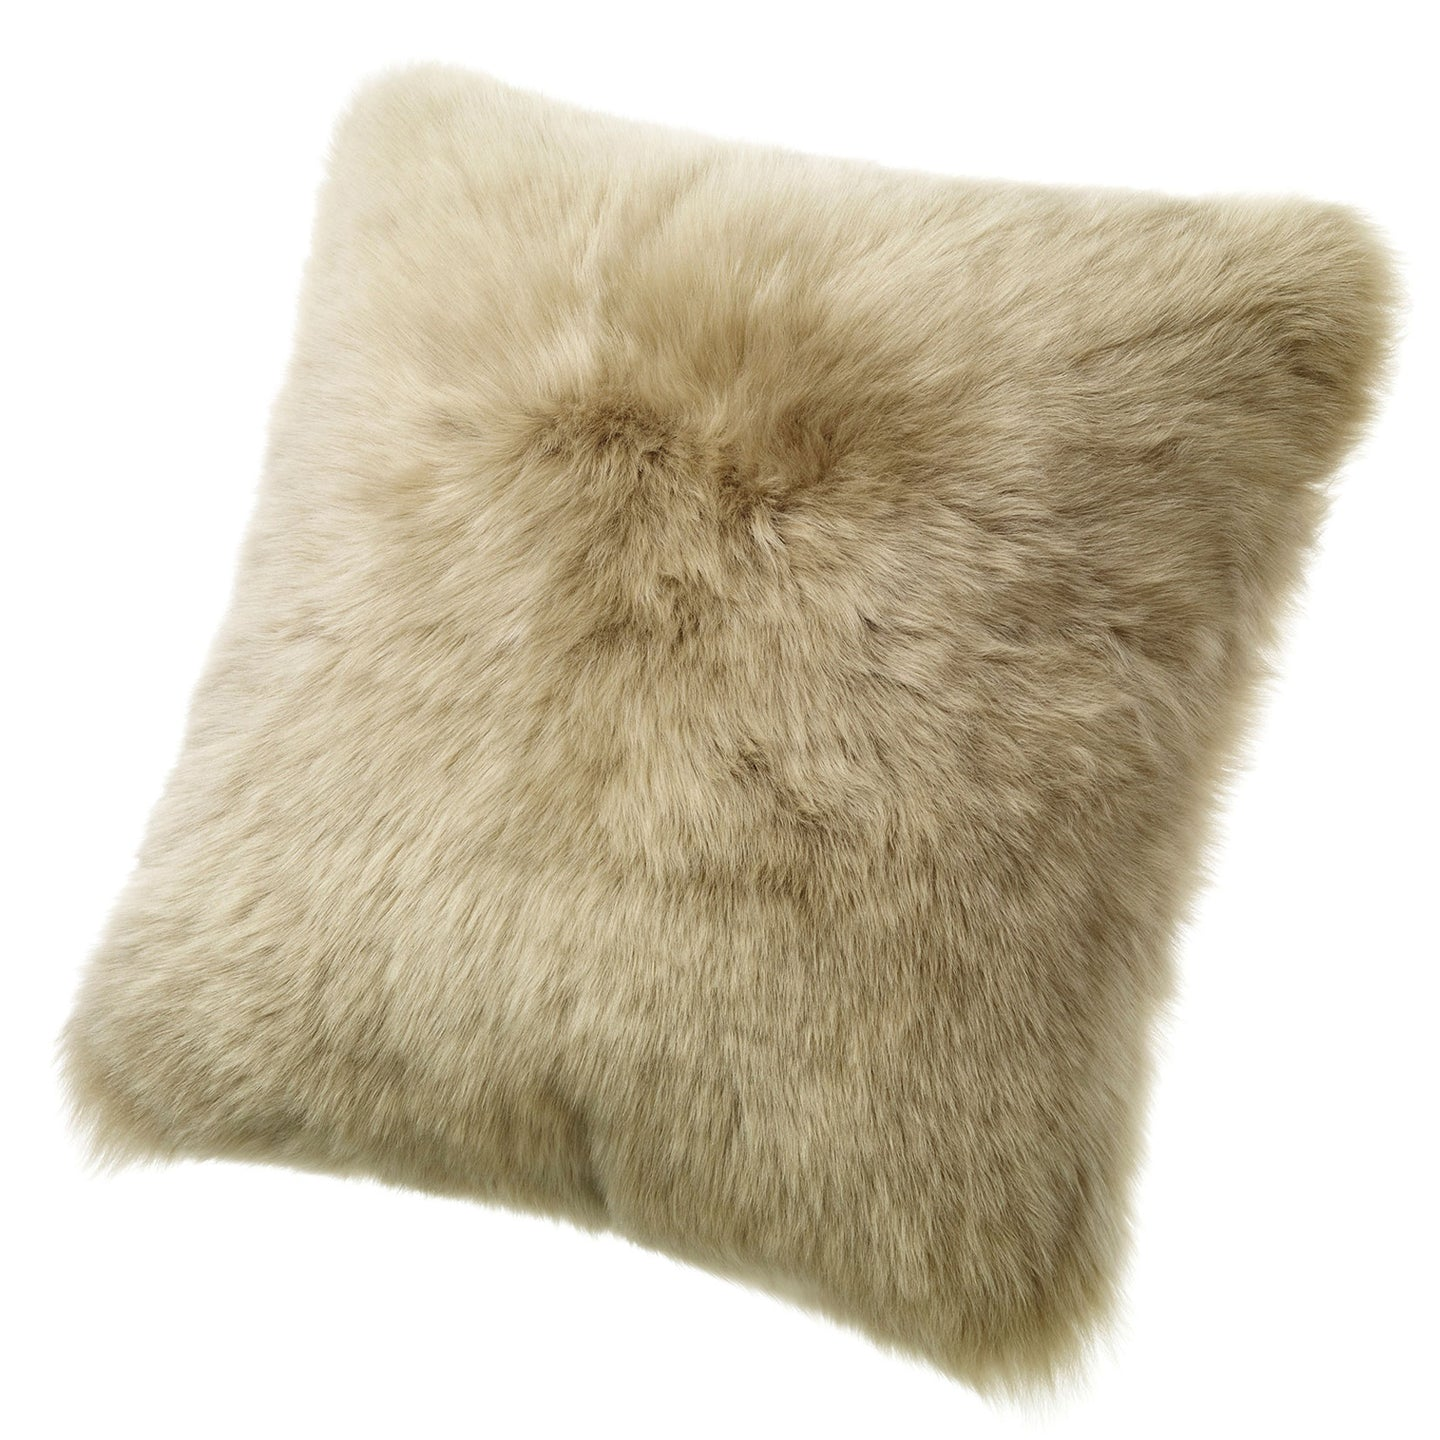 SHEARLING PILLOW - TAUPE